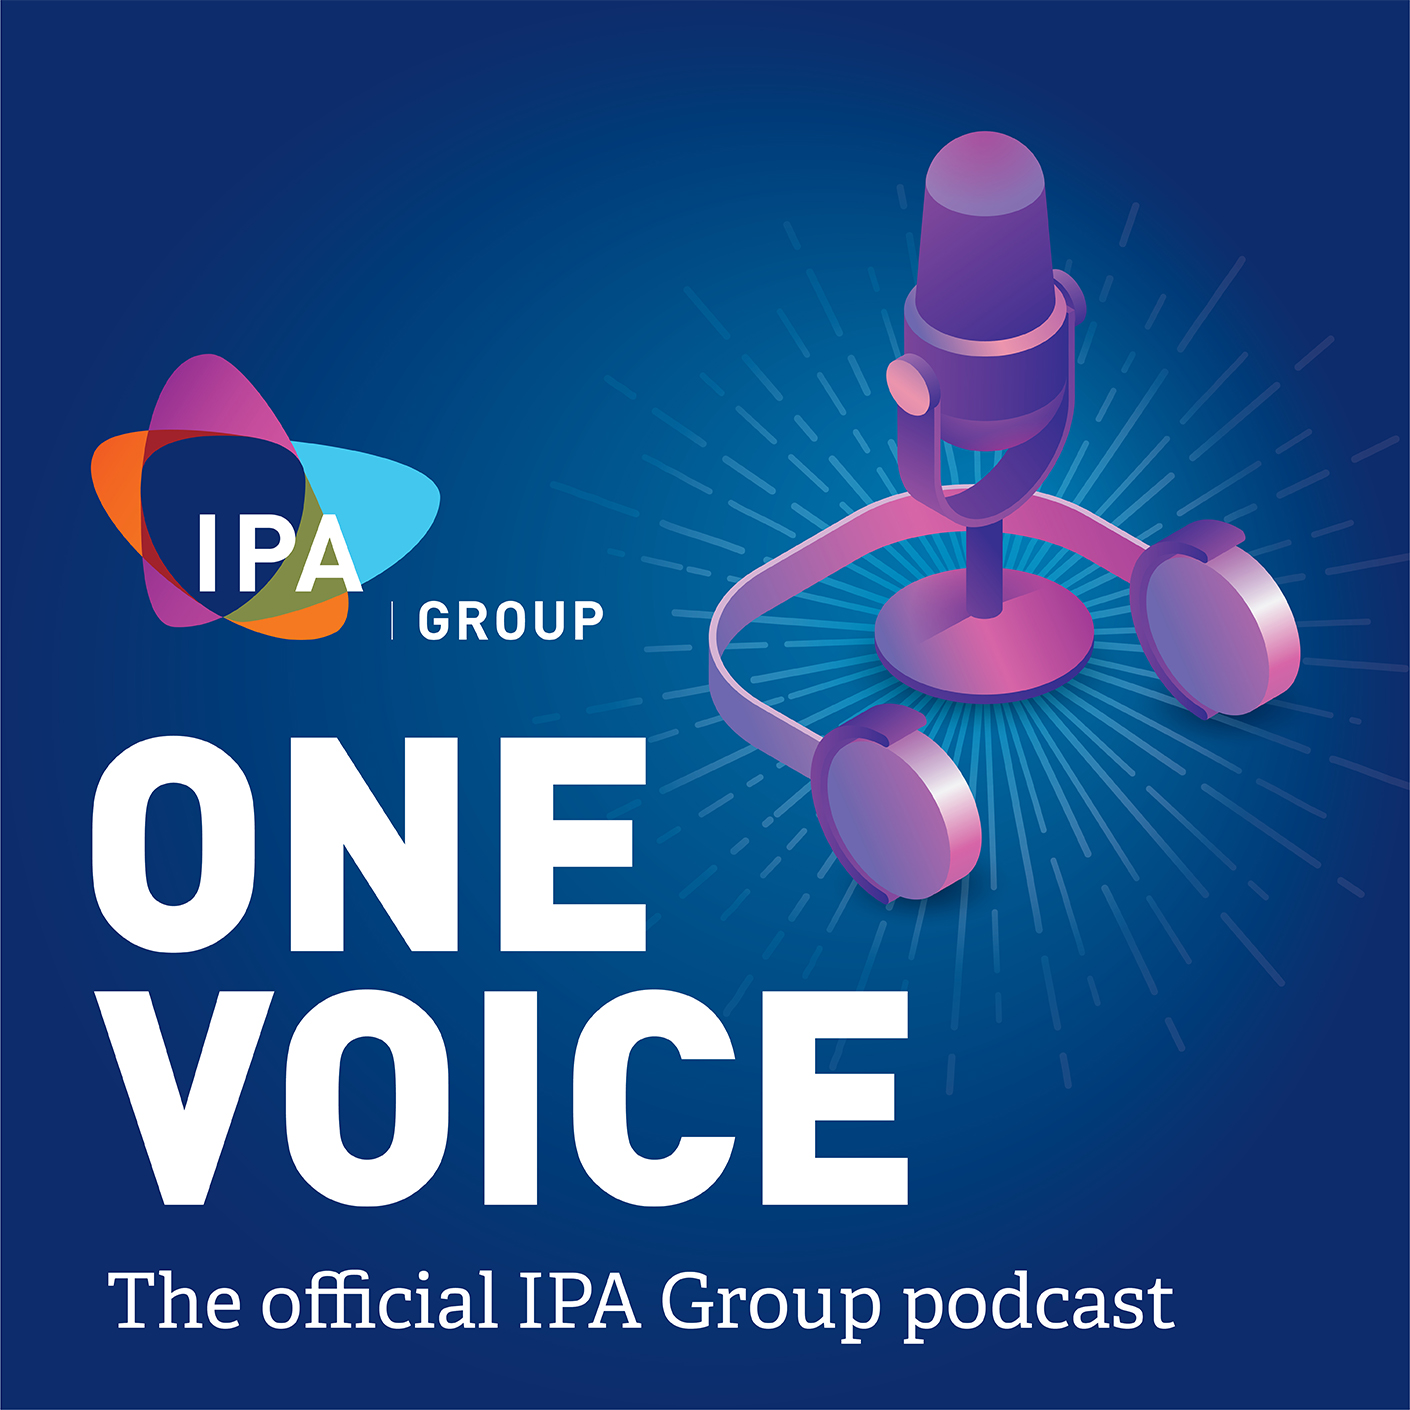 One Voice Christmas special – A word from the IPA leadership